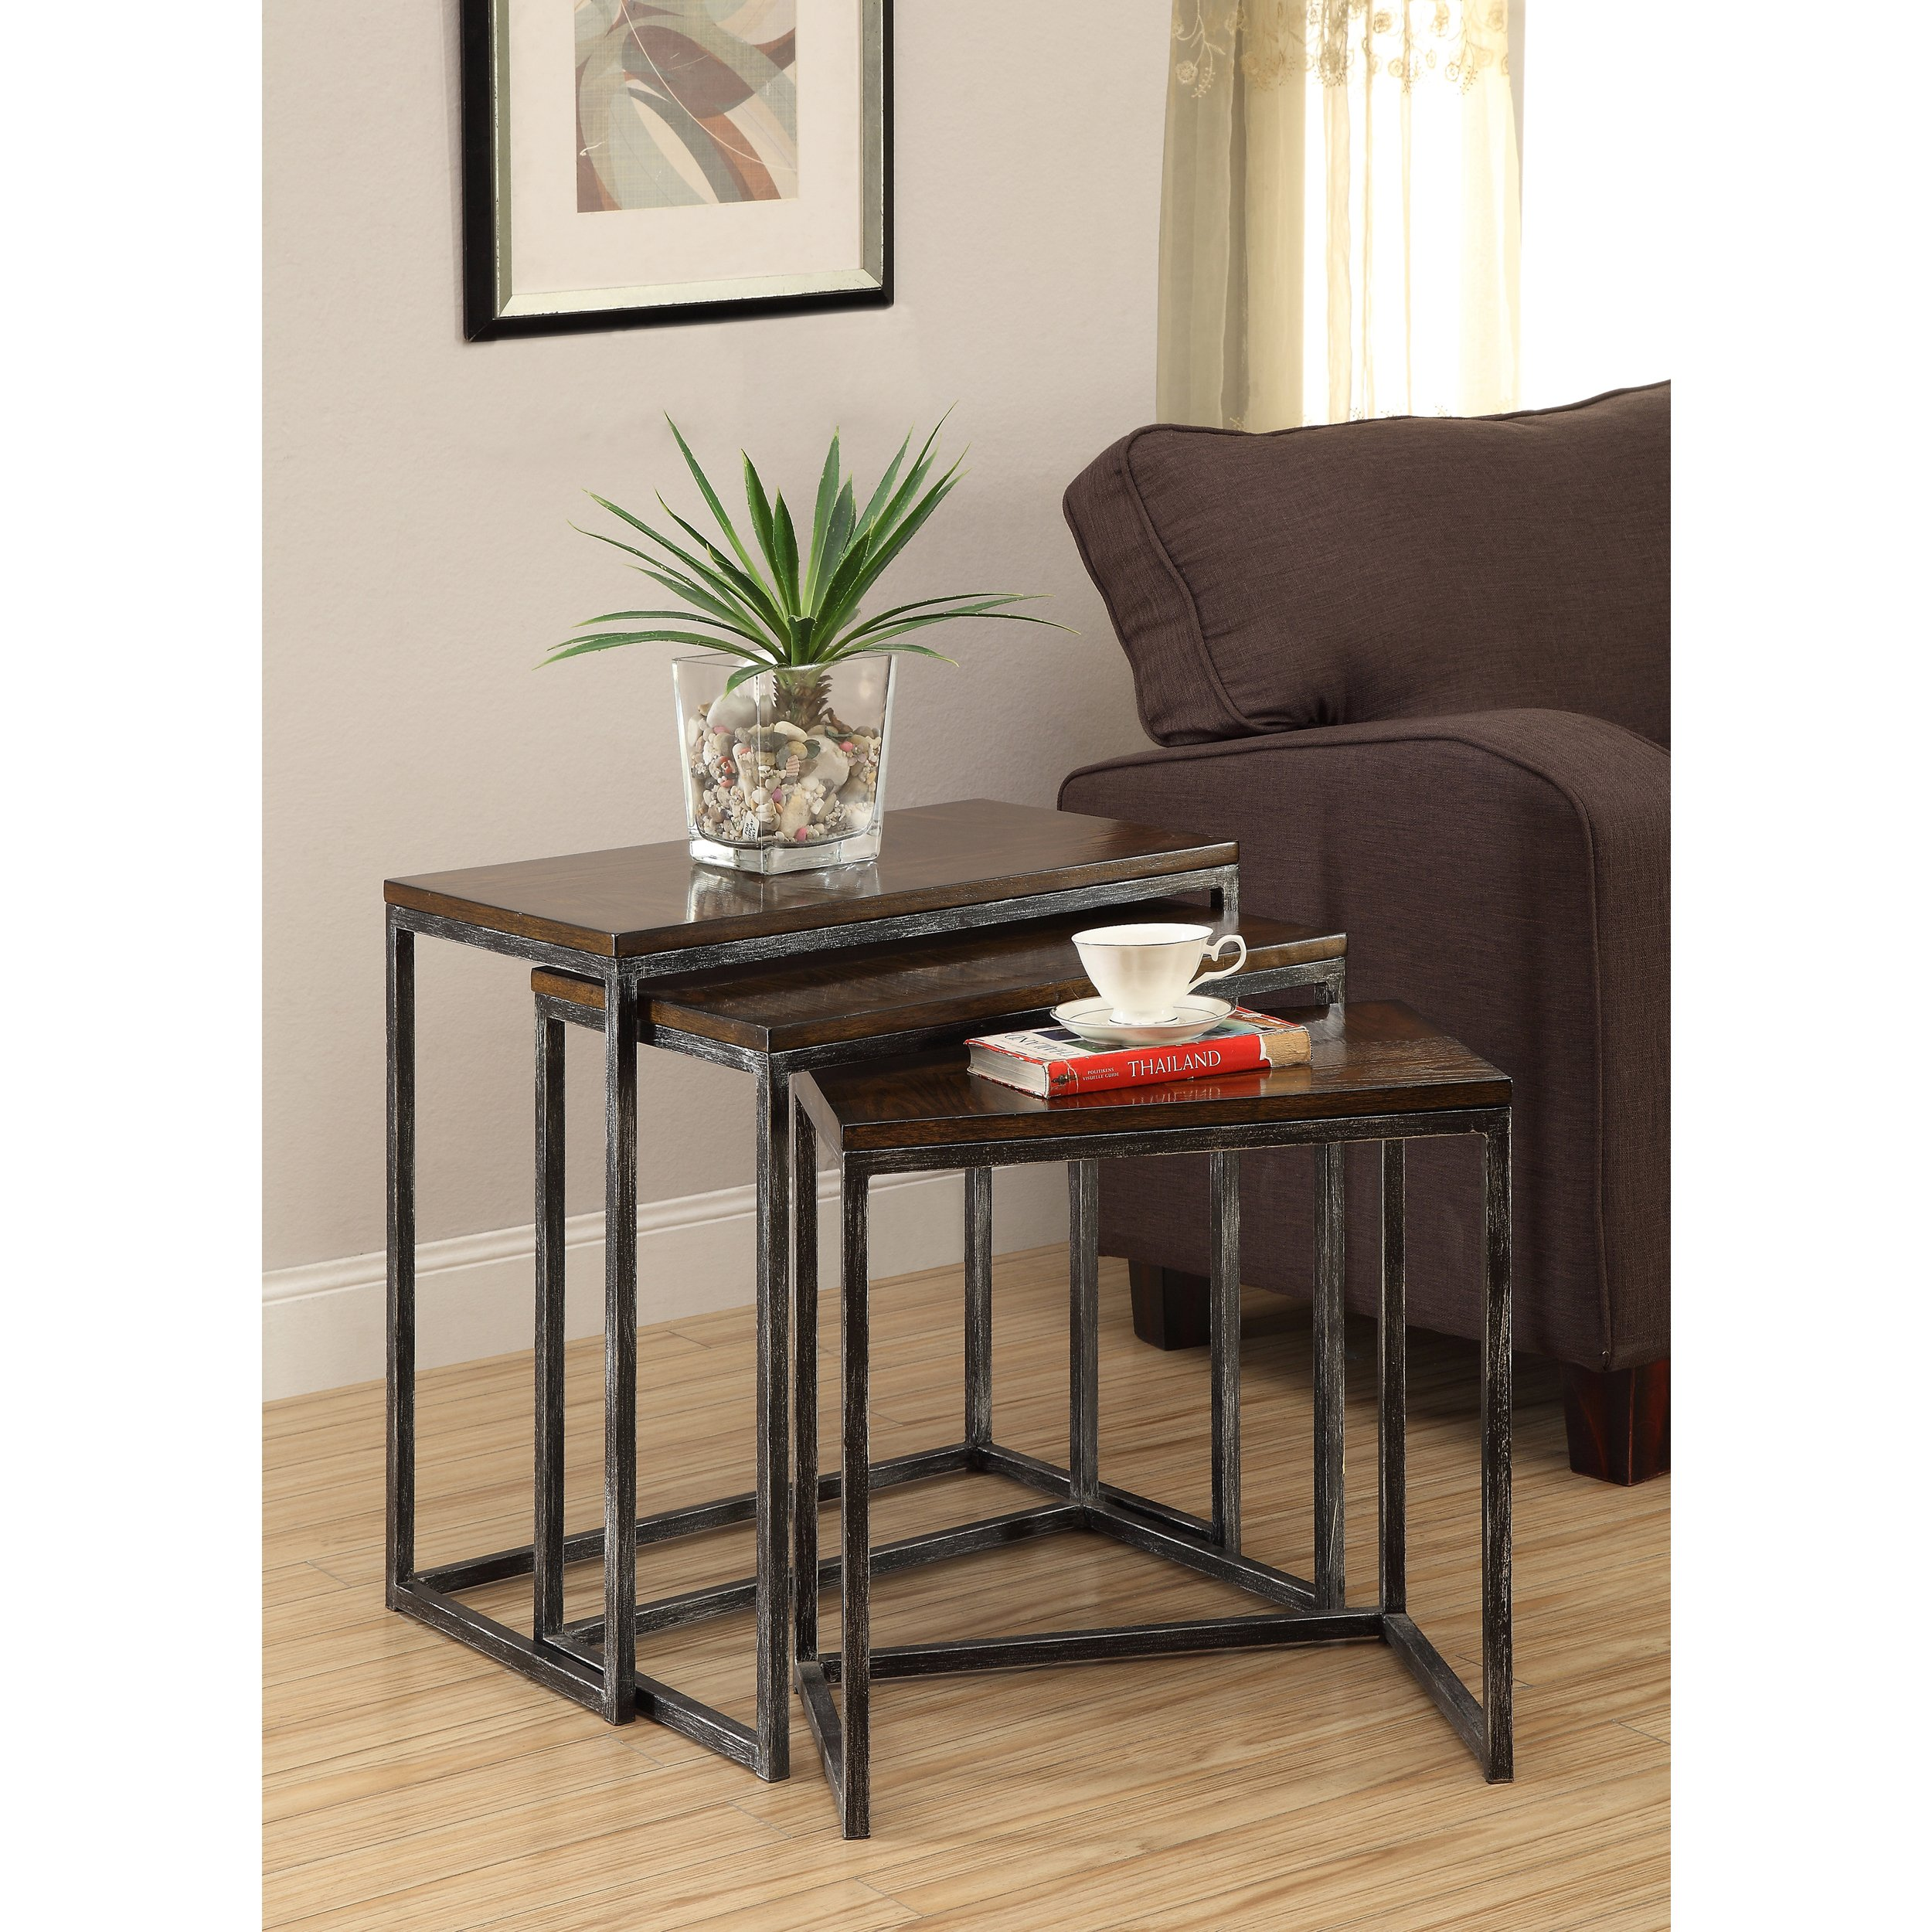 somette brown cherry tier nesting accent tables set tiered metal table free shipping today vintage two chest asian drum plant stand nook plus modern legs clear console aqua end